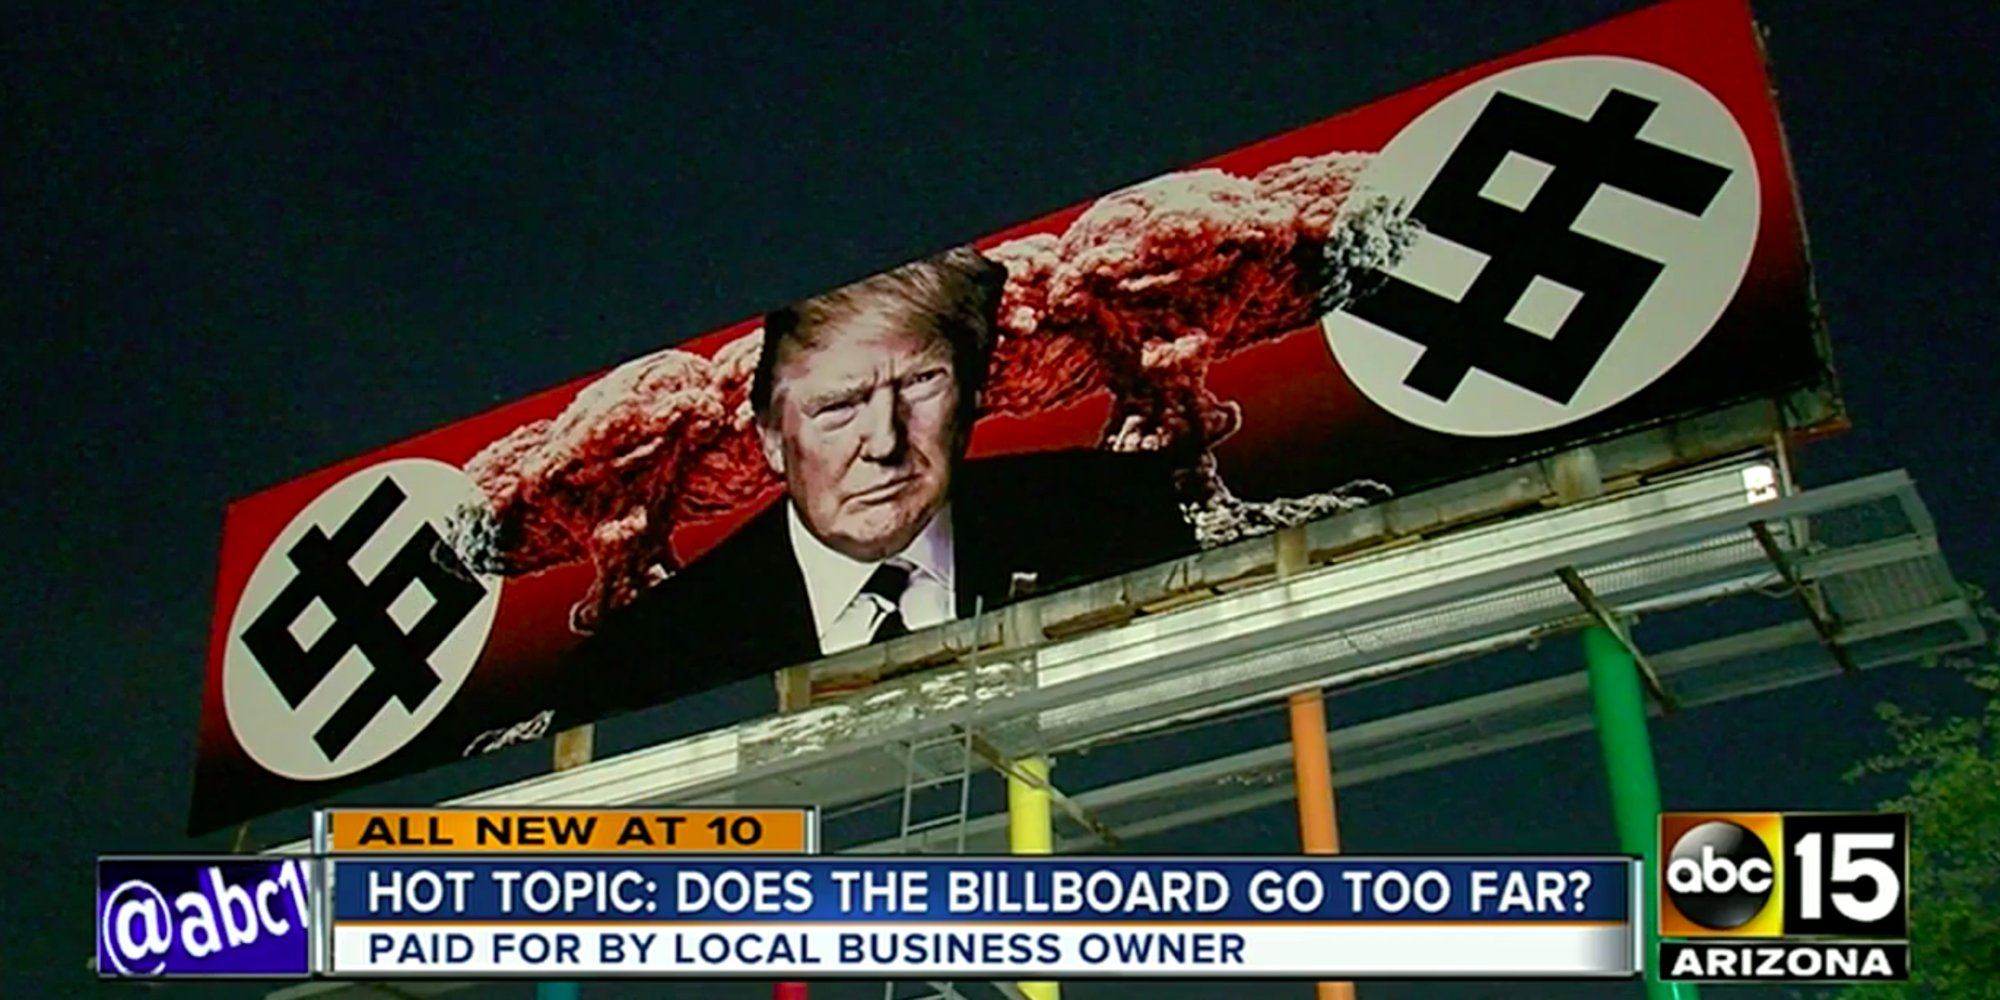 Nazi-themed Trump billboard to stay up as long as he's president, owner says https://t.co/IDw94Ix4HS https://t.co/OYjPcSUJSM